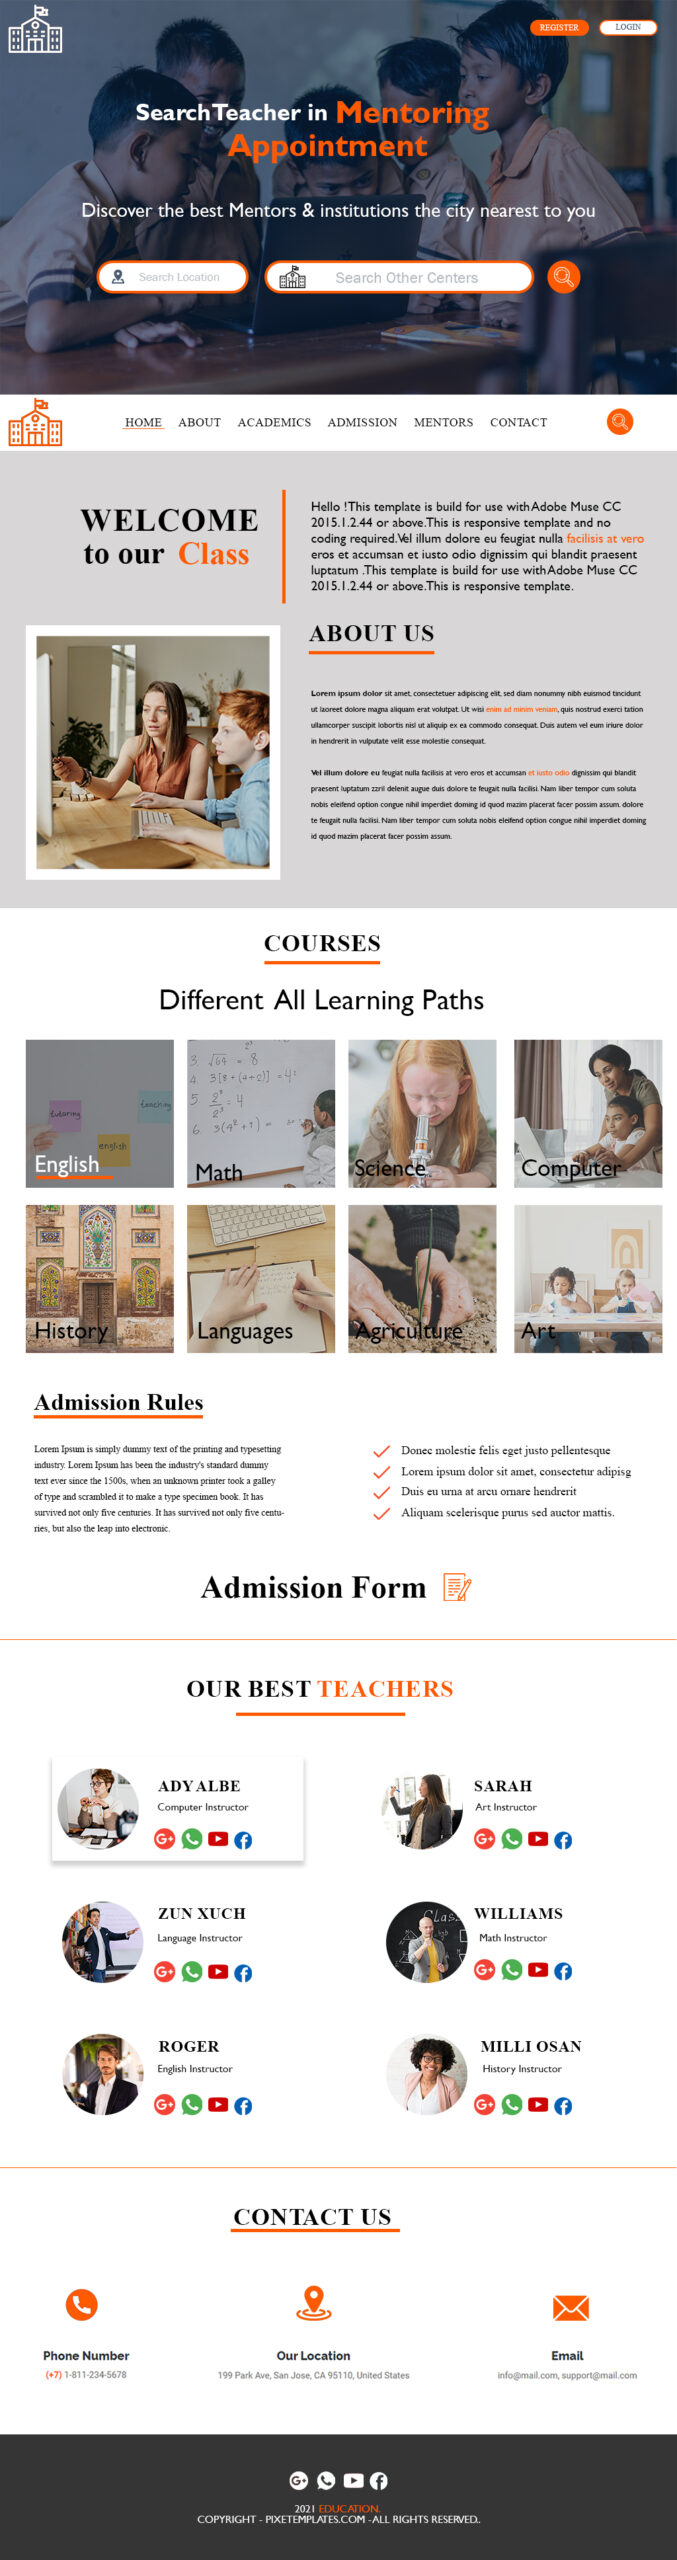 Beautiful Photoshop Interface for Education System